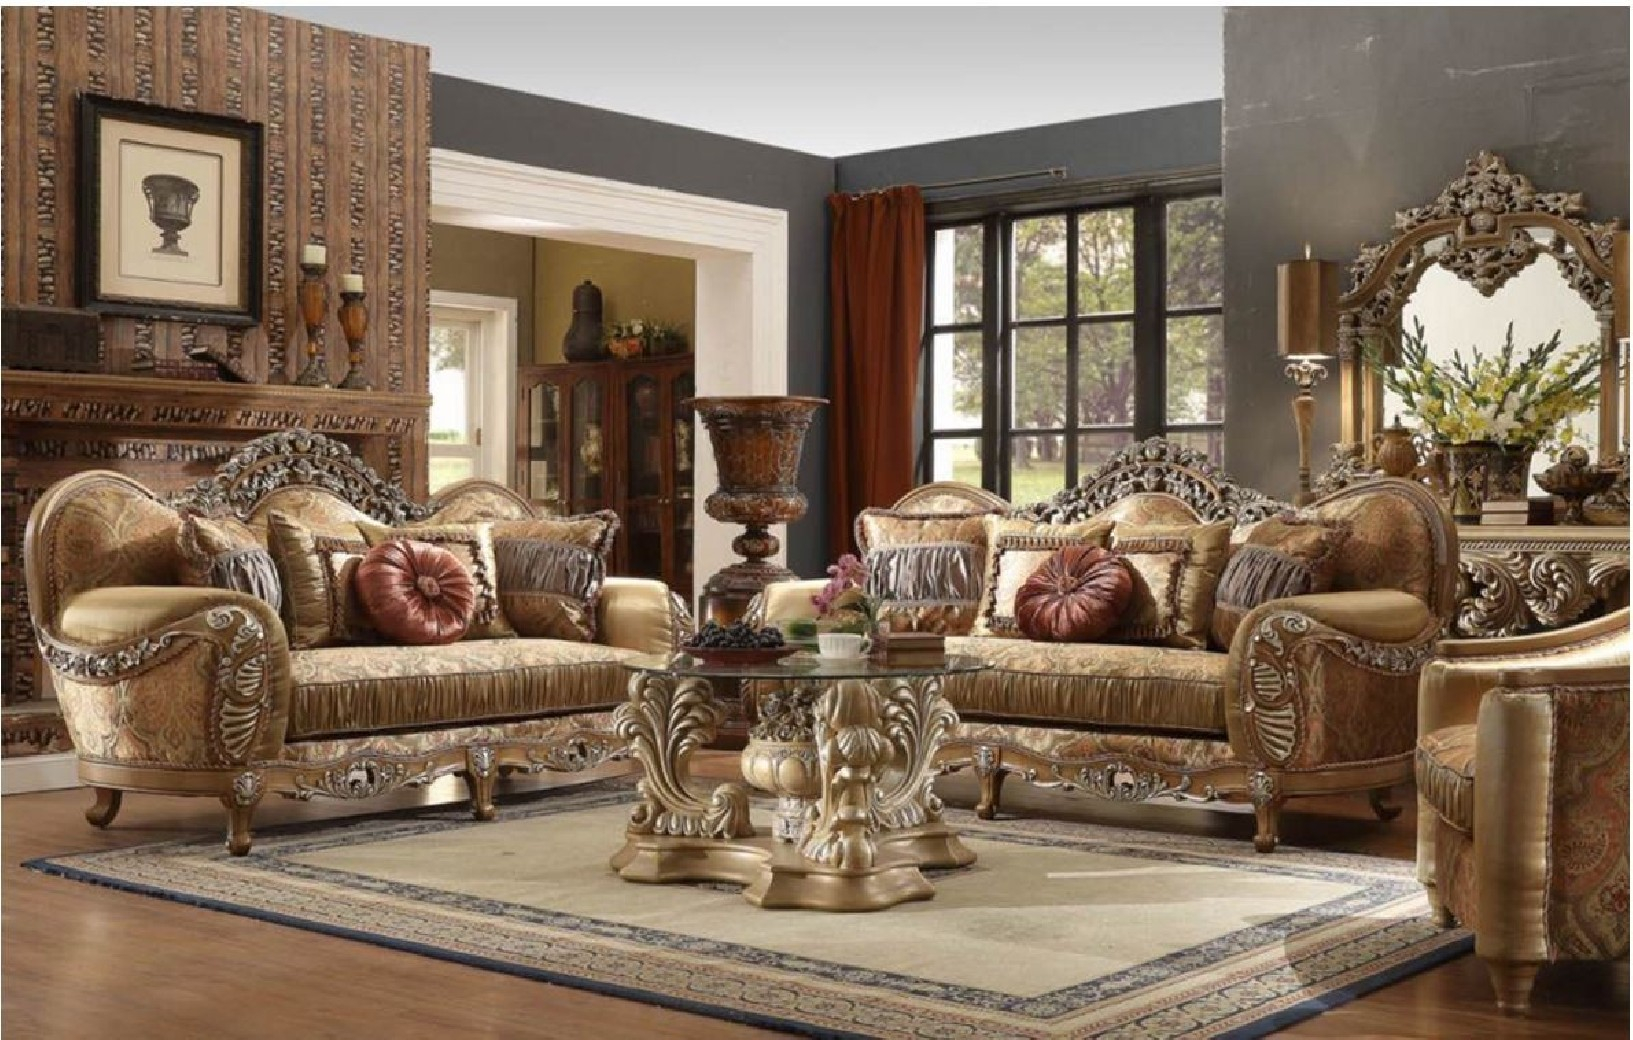 Hd 622 Homey Design Upholstery Living Room Set Victorian European for 13 Some of the Coolest Initiatives of How to Build Living Room Sets